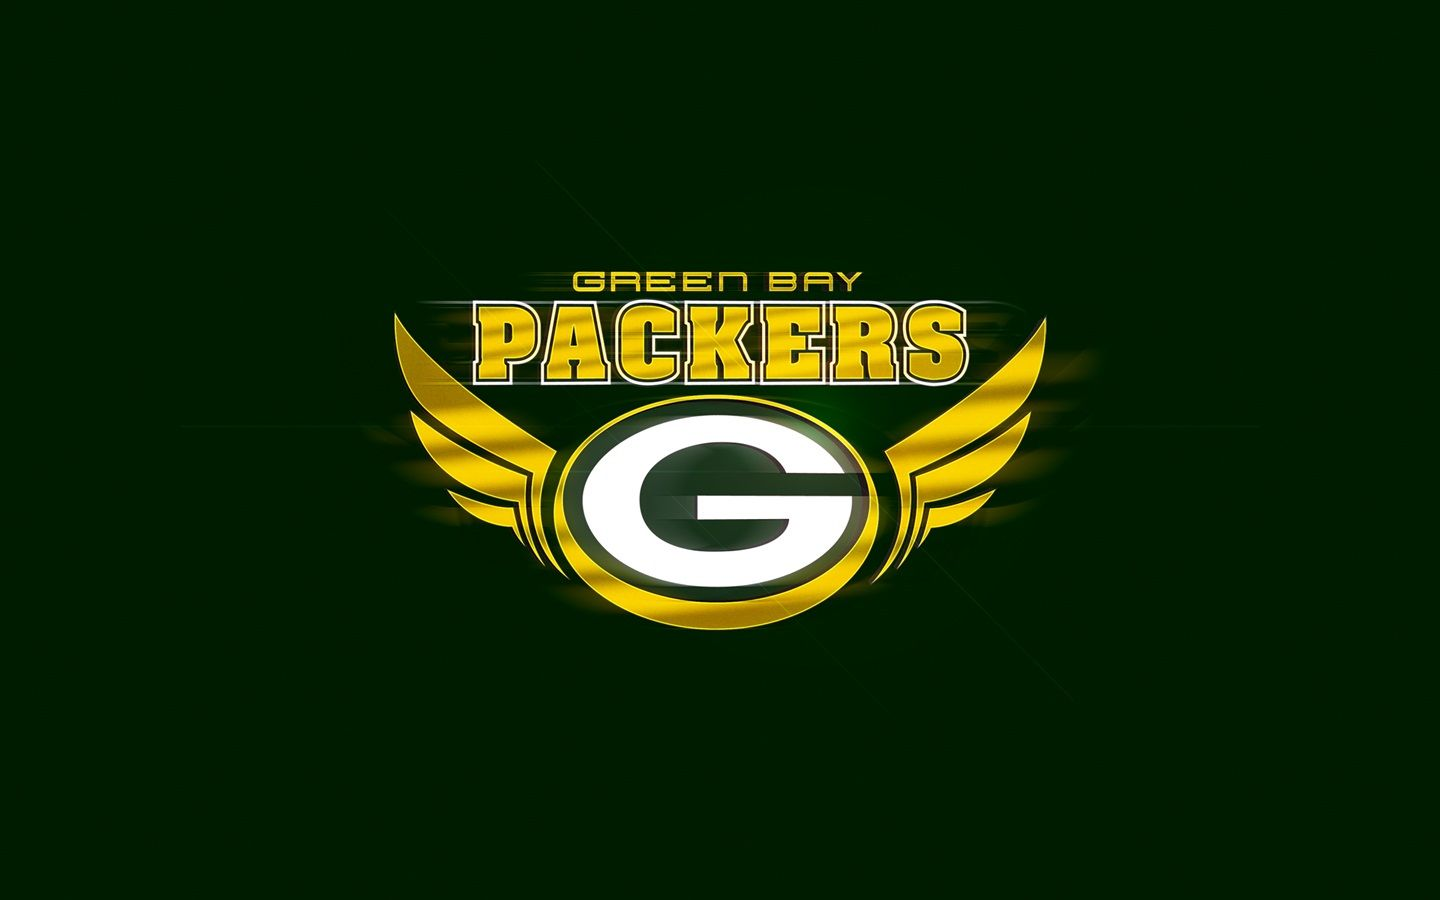 Green Bay Packers Wings Logo Wallpaper Wallpapers Hd Wallpaper Green Bay Packers Green Bay Futbol Americano